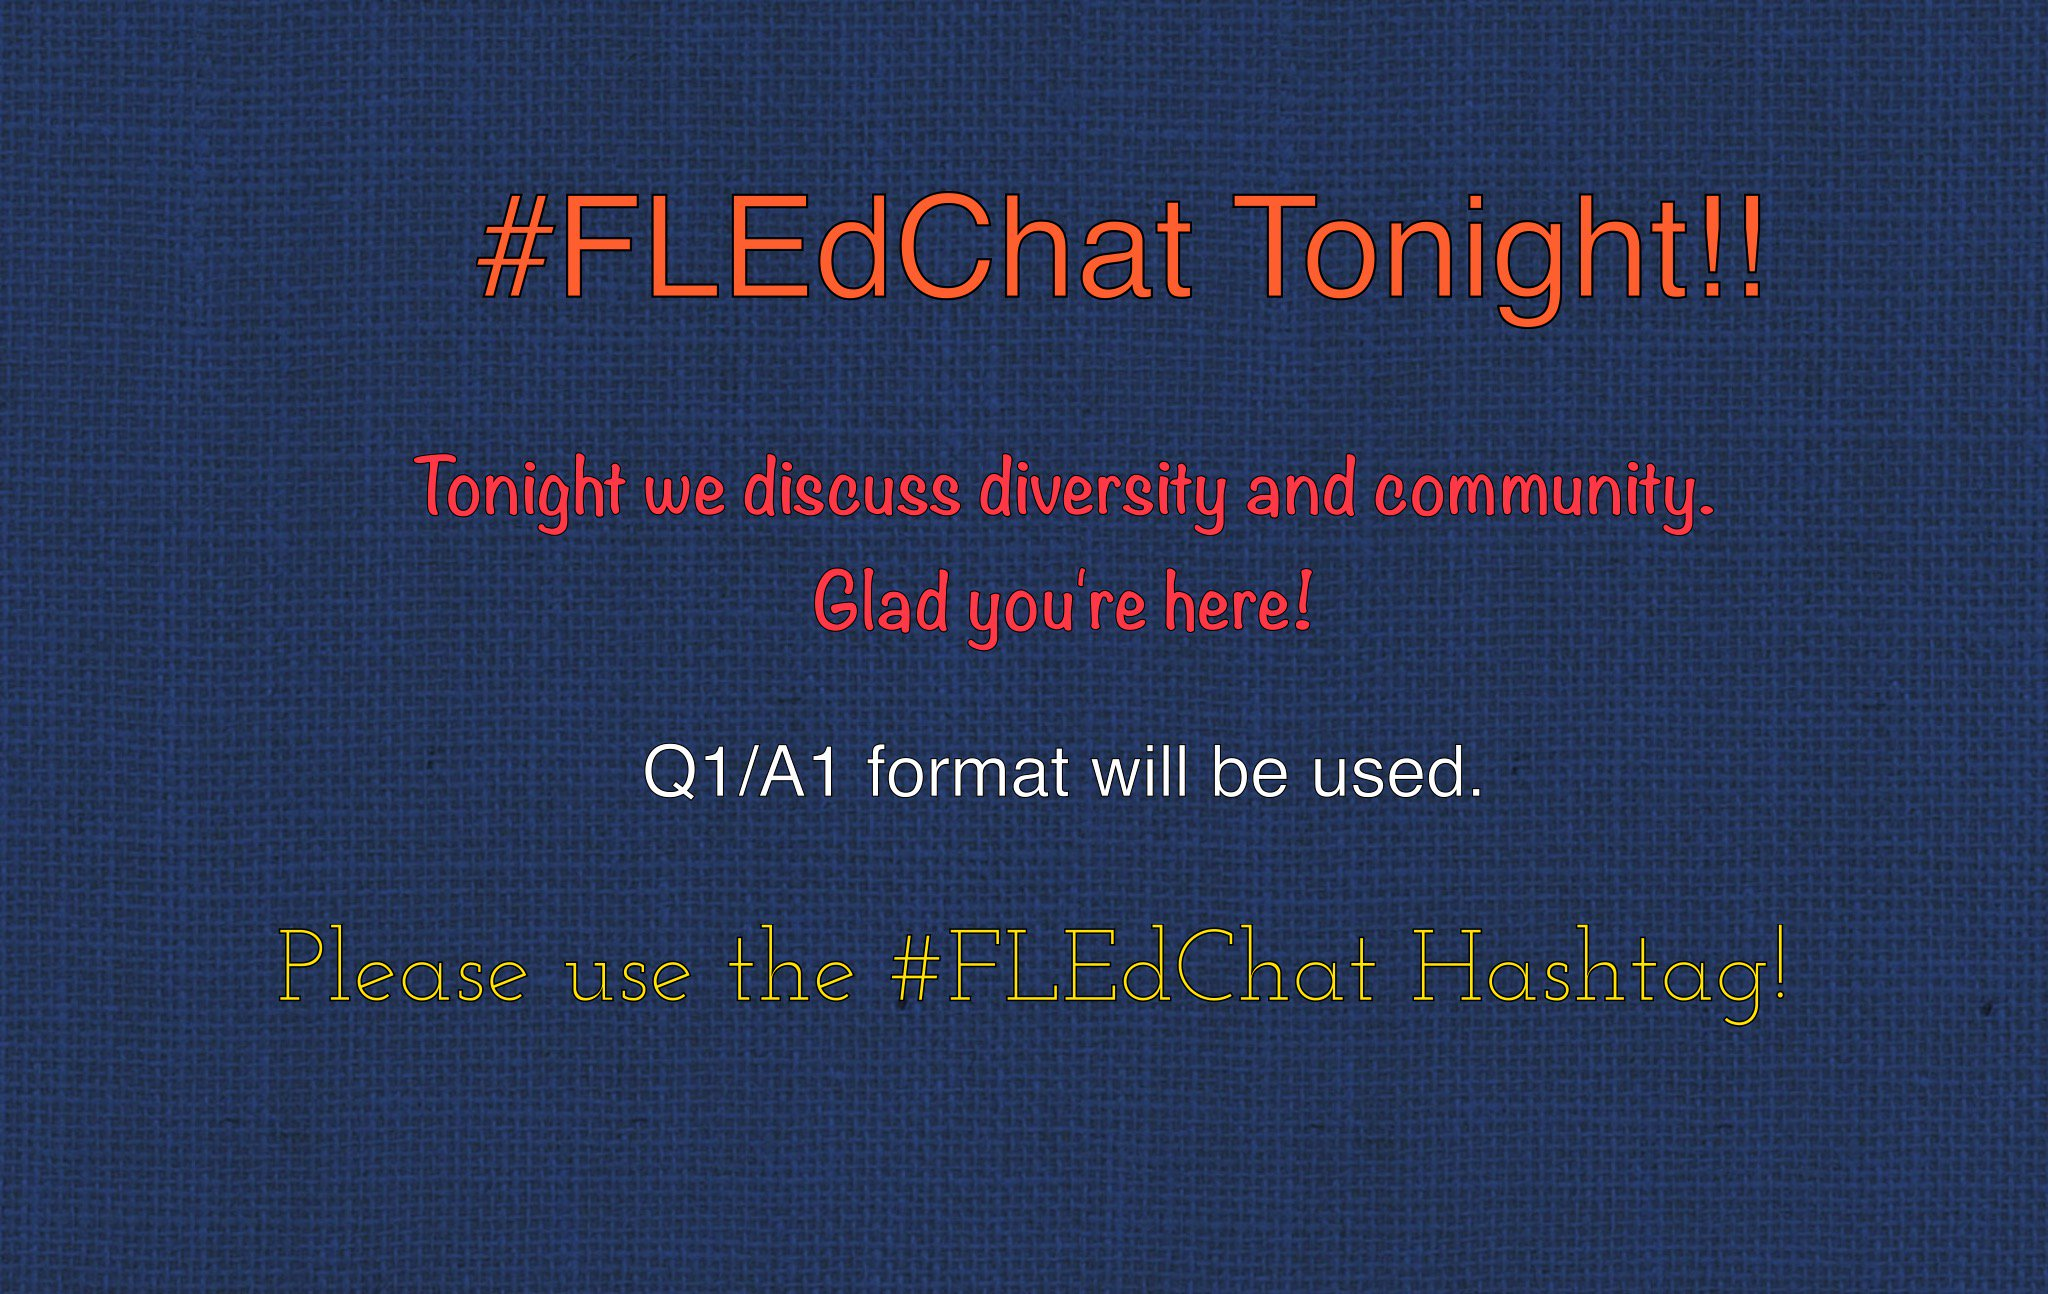 For the chat tonight, the Q1/A1 format will be used! Don't forget the #FLEdChat hashtag! https://t.co/0xJv8dQ1aD